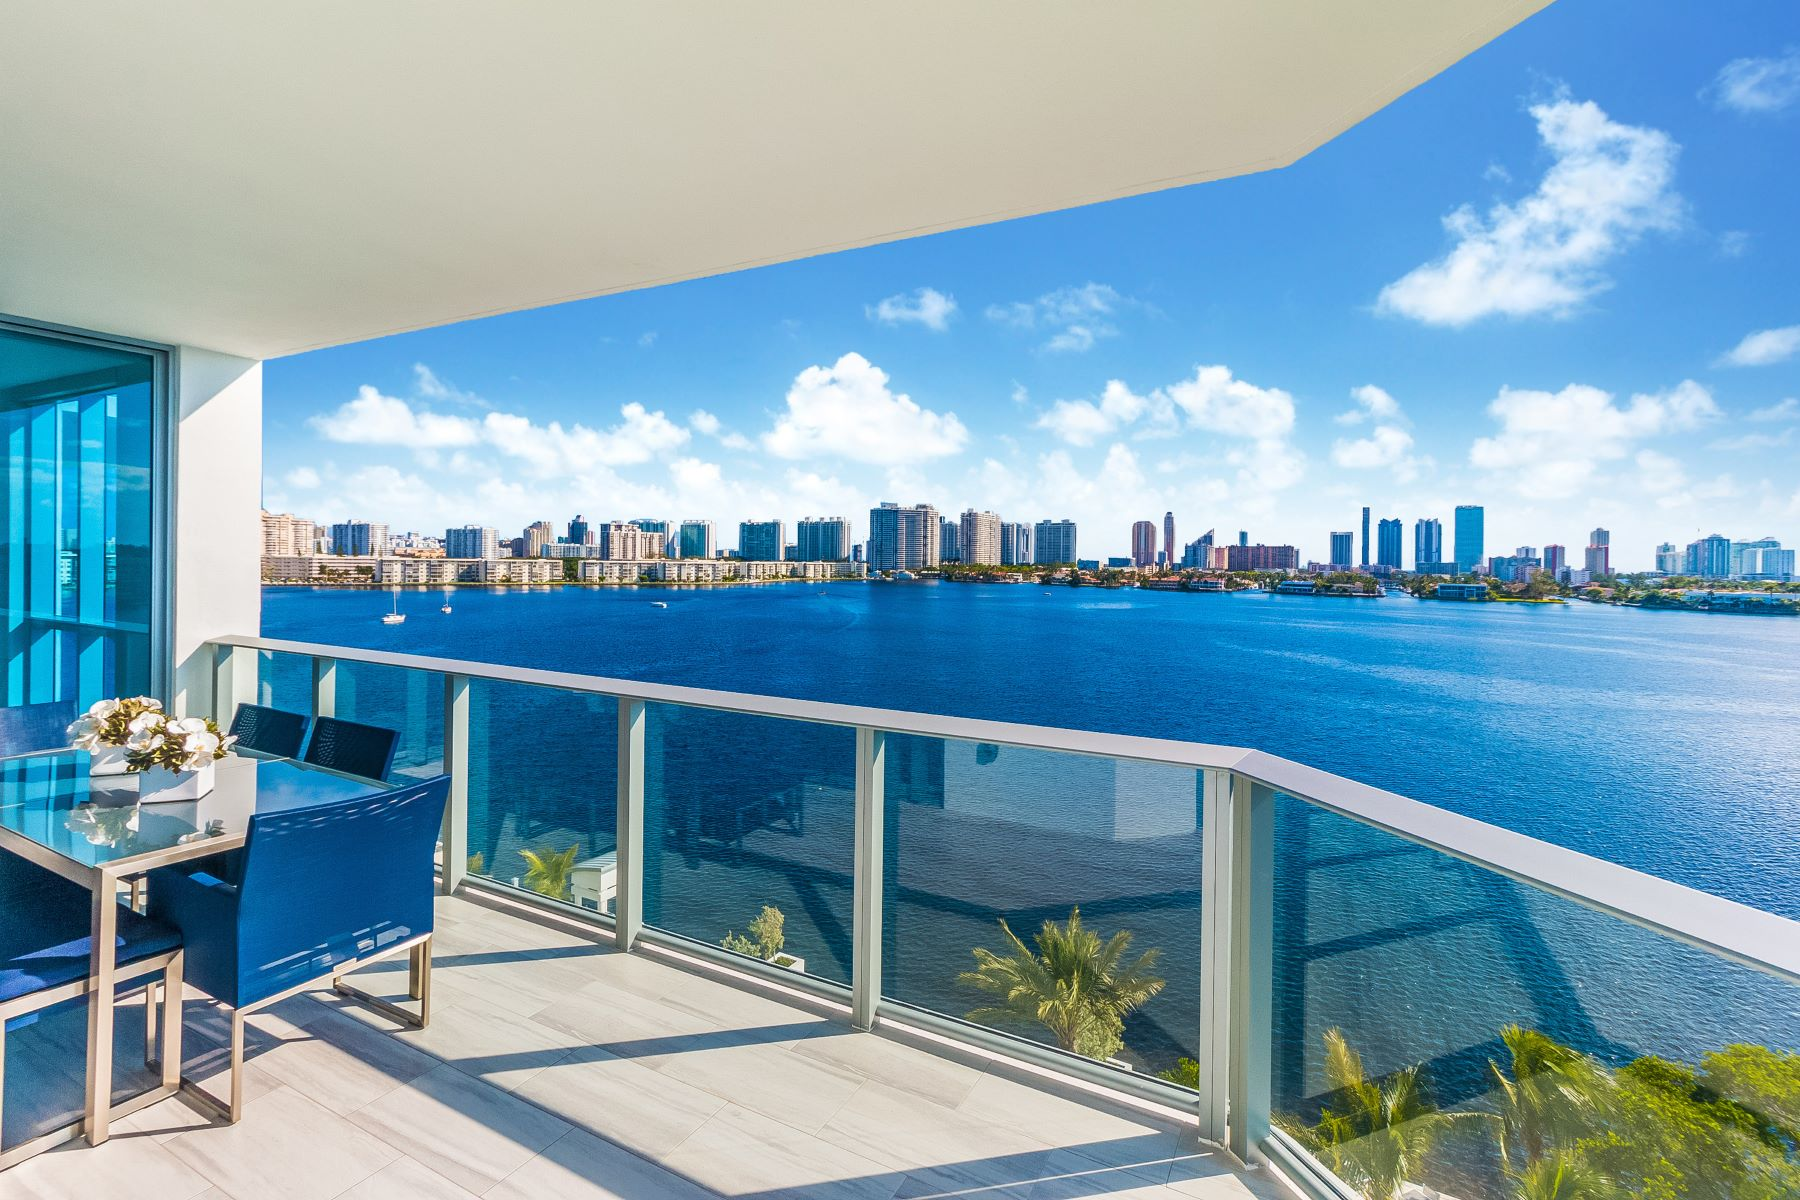 Condominiums for Sale at 17111 Biscayne Blvd #710 17111 Biscayne Blvd 710, Aventura, Florida 33160 United States